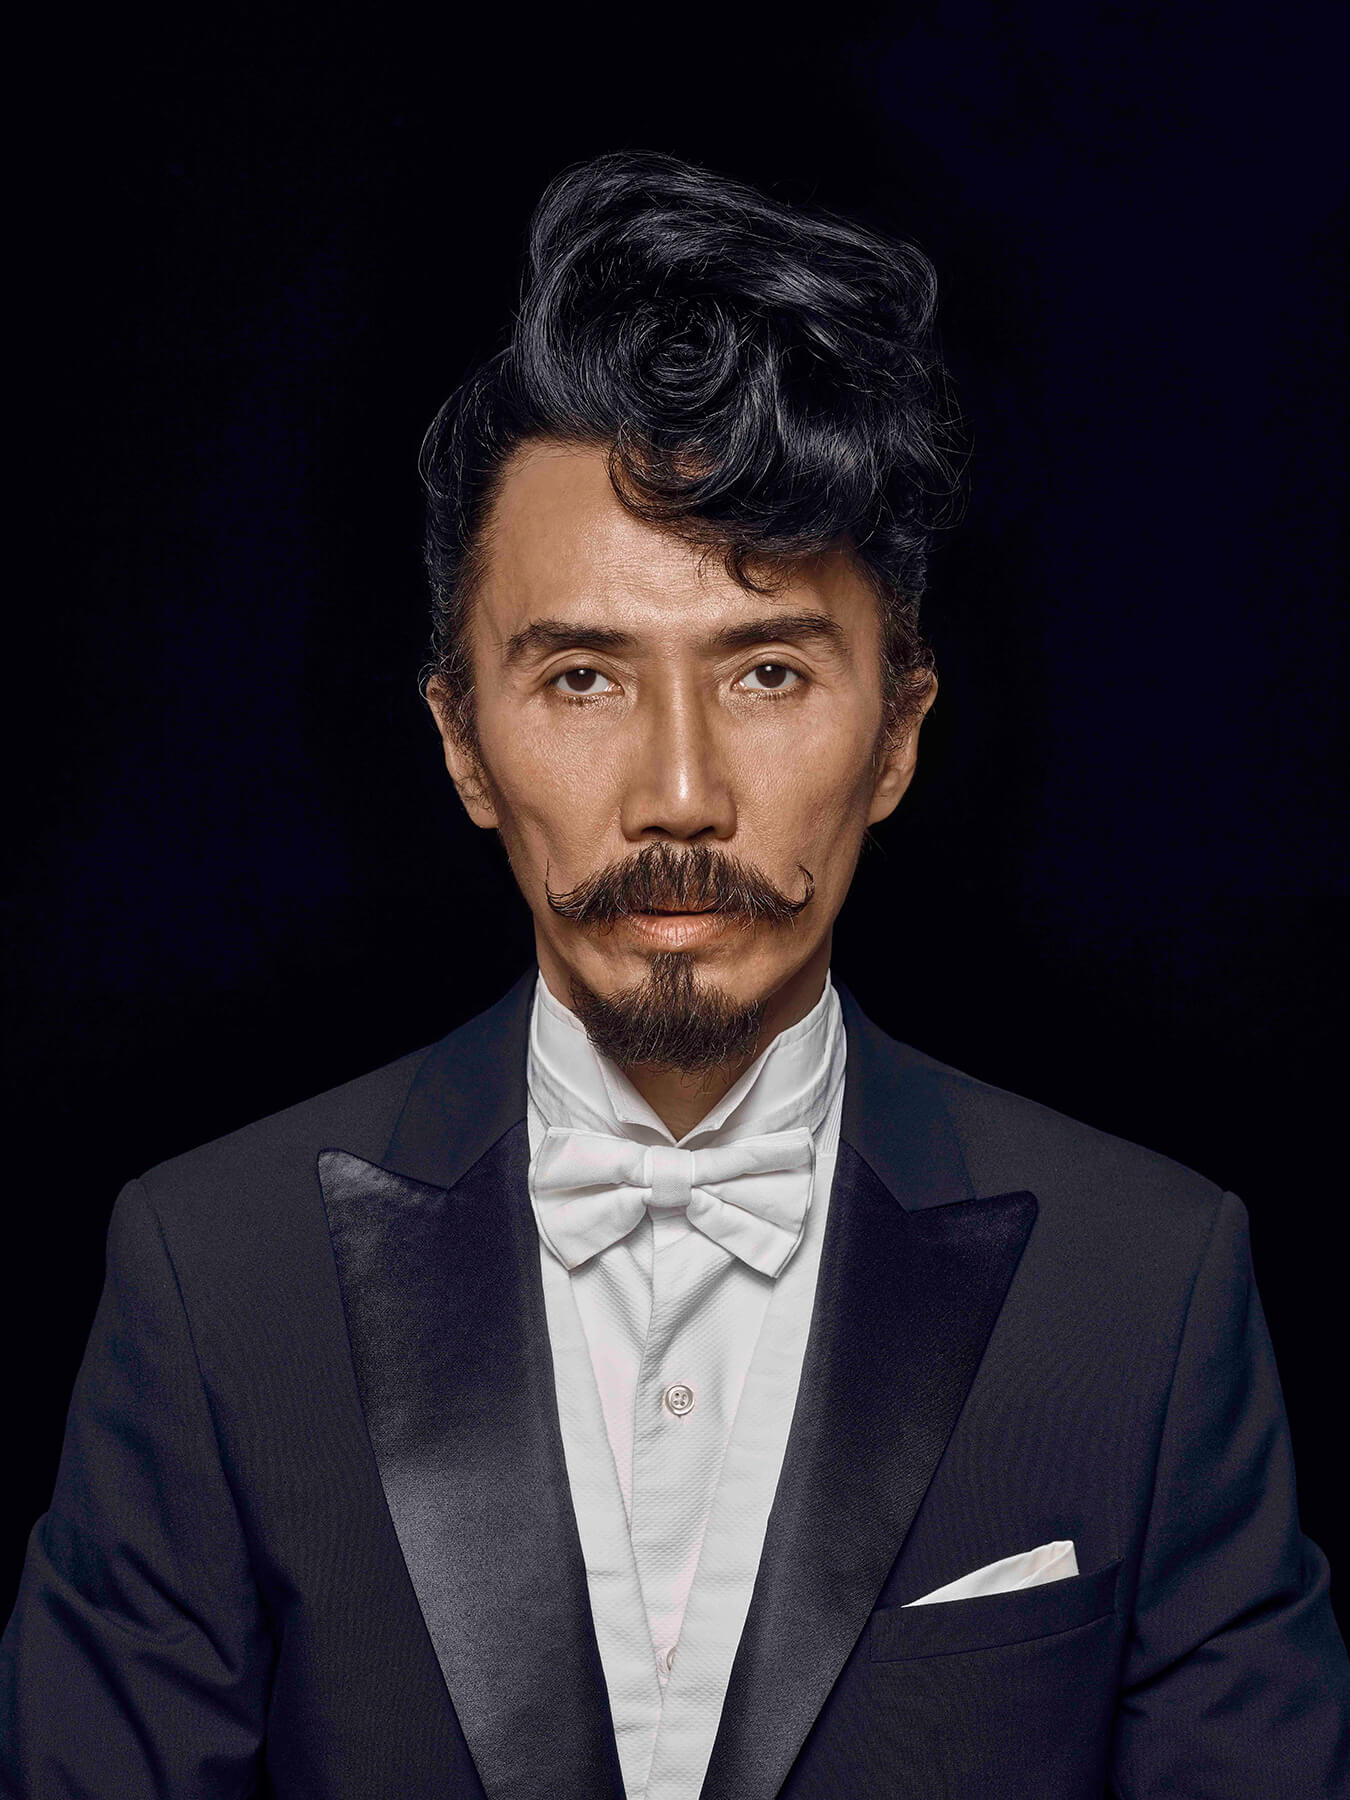 26 Nov 2017 Derong is styled as Hercule Poirot